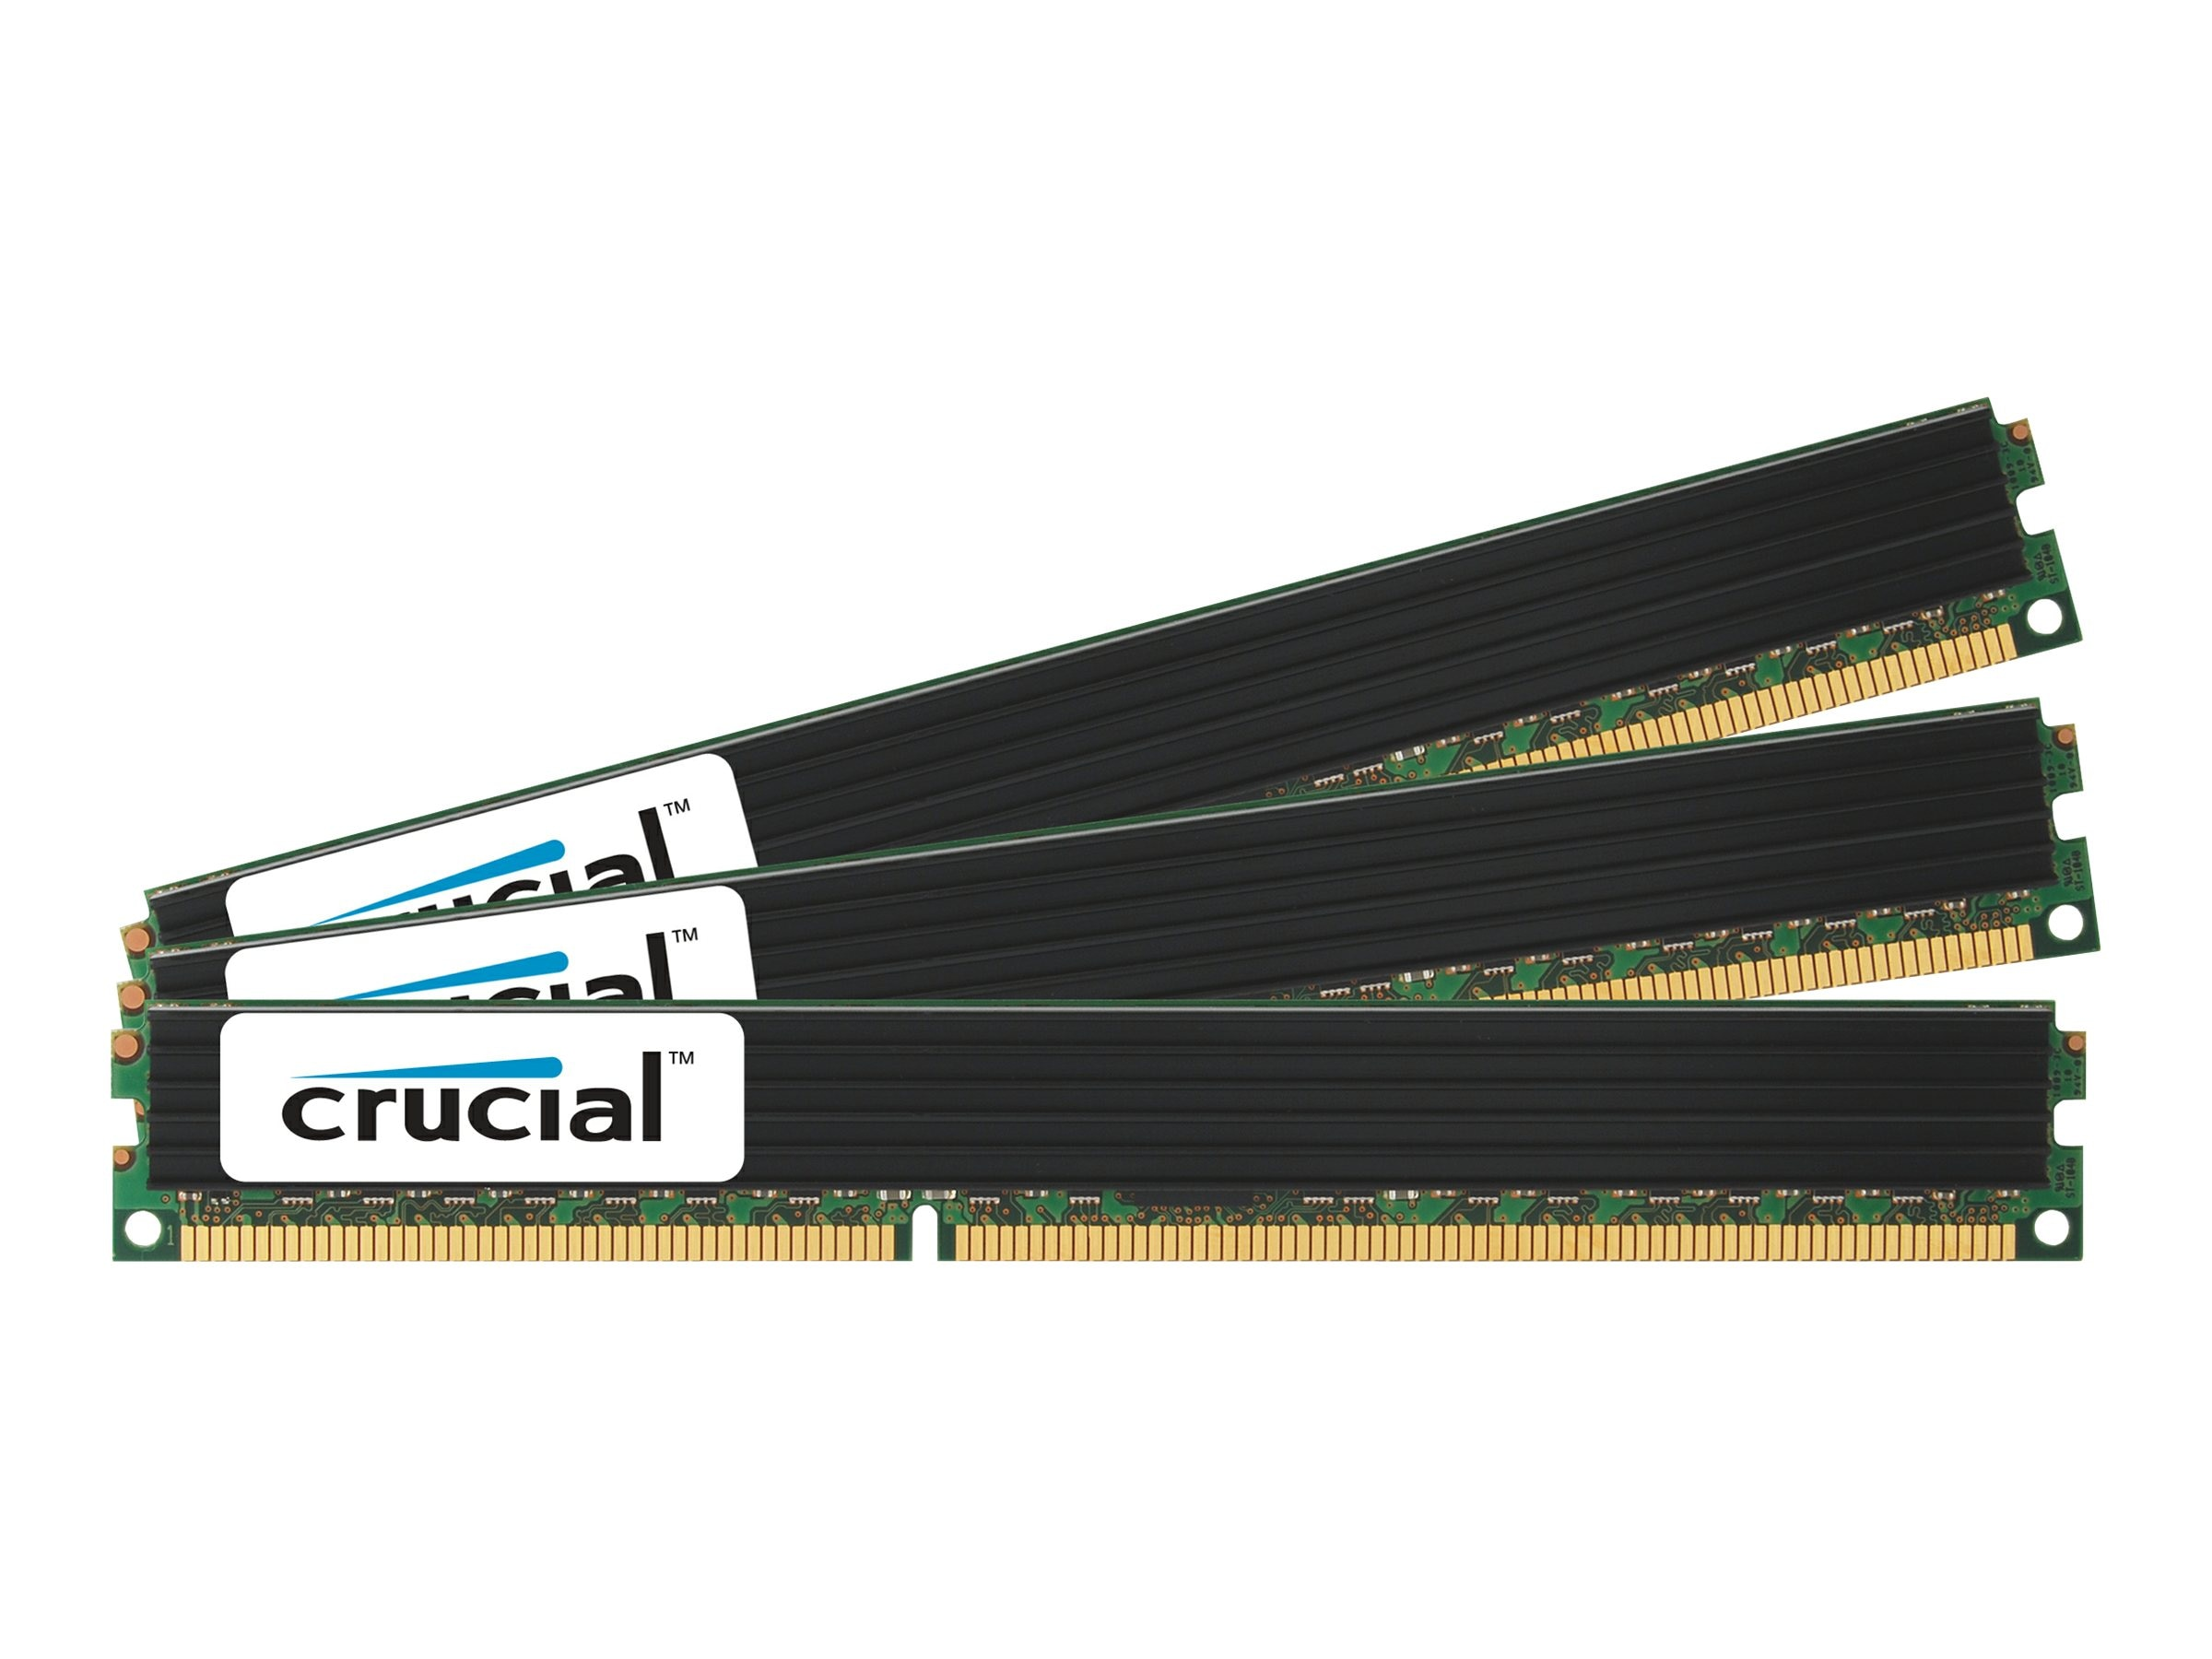 Crucial 24GB PC3-12800 240-pin DDR3 SDRAM DIMM Kit, CT3K8G3ERVLD8160B, 16368678, Memory